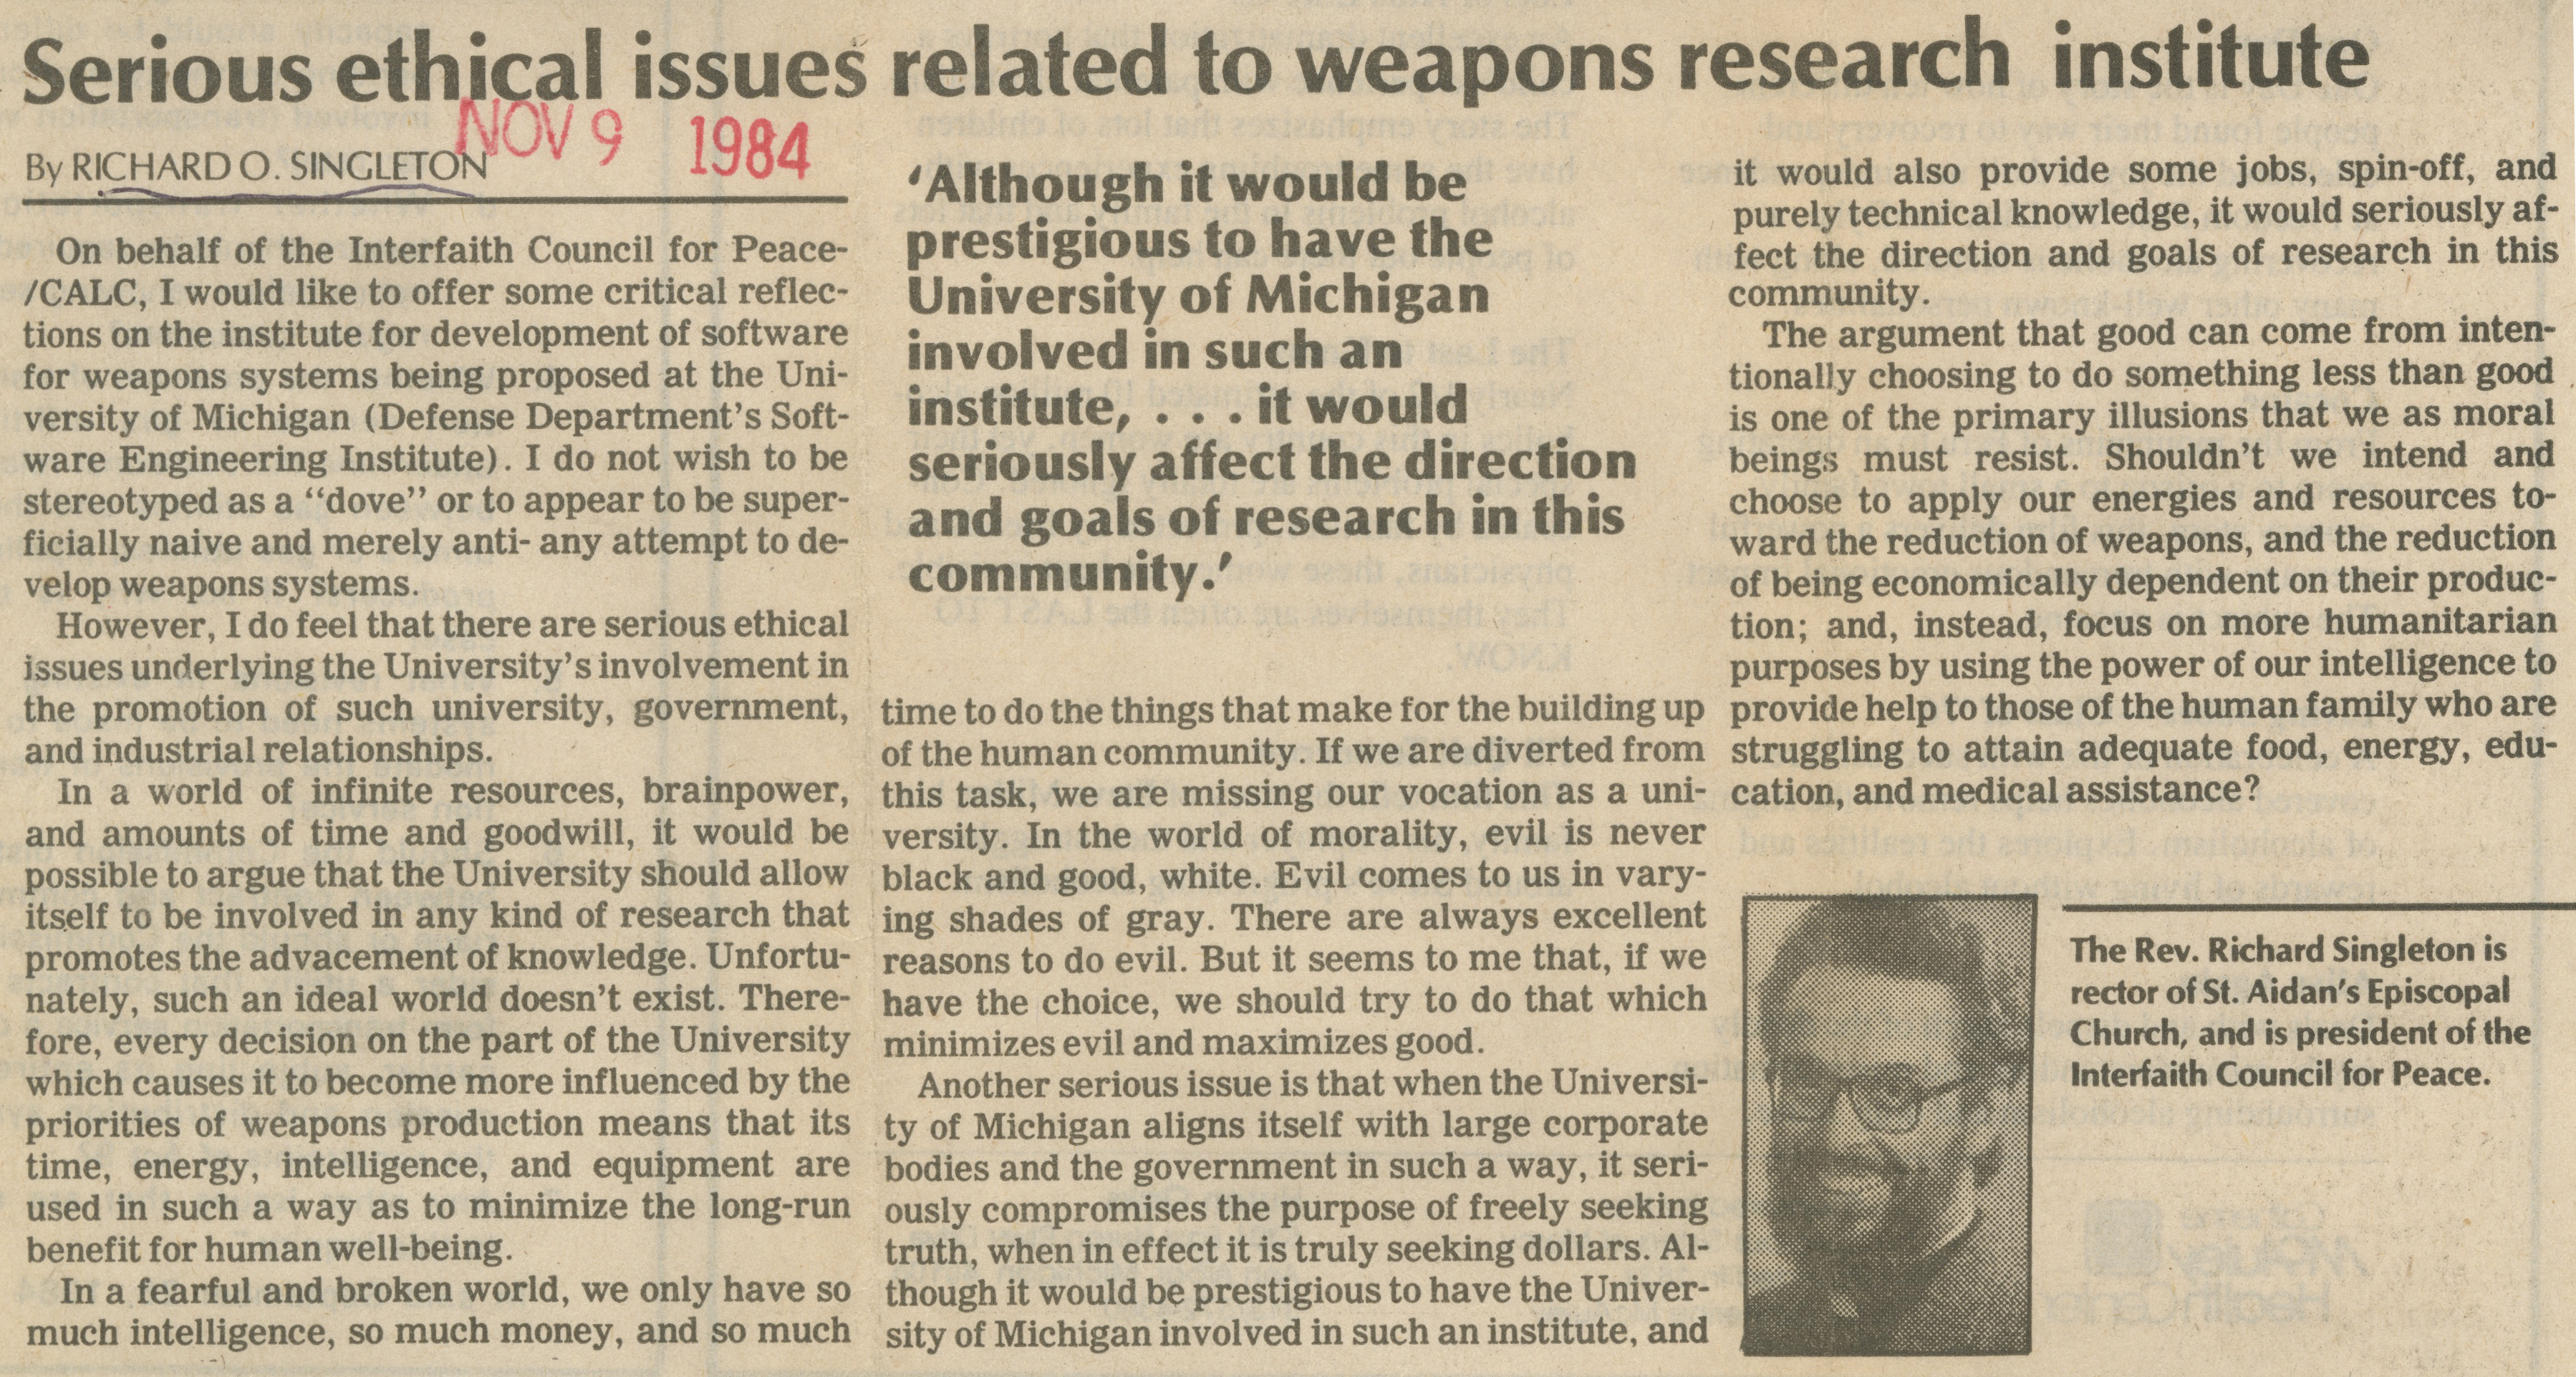 Serious Ethical Issues Related To Weapons Research Institute image